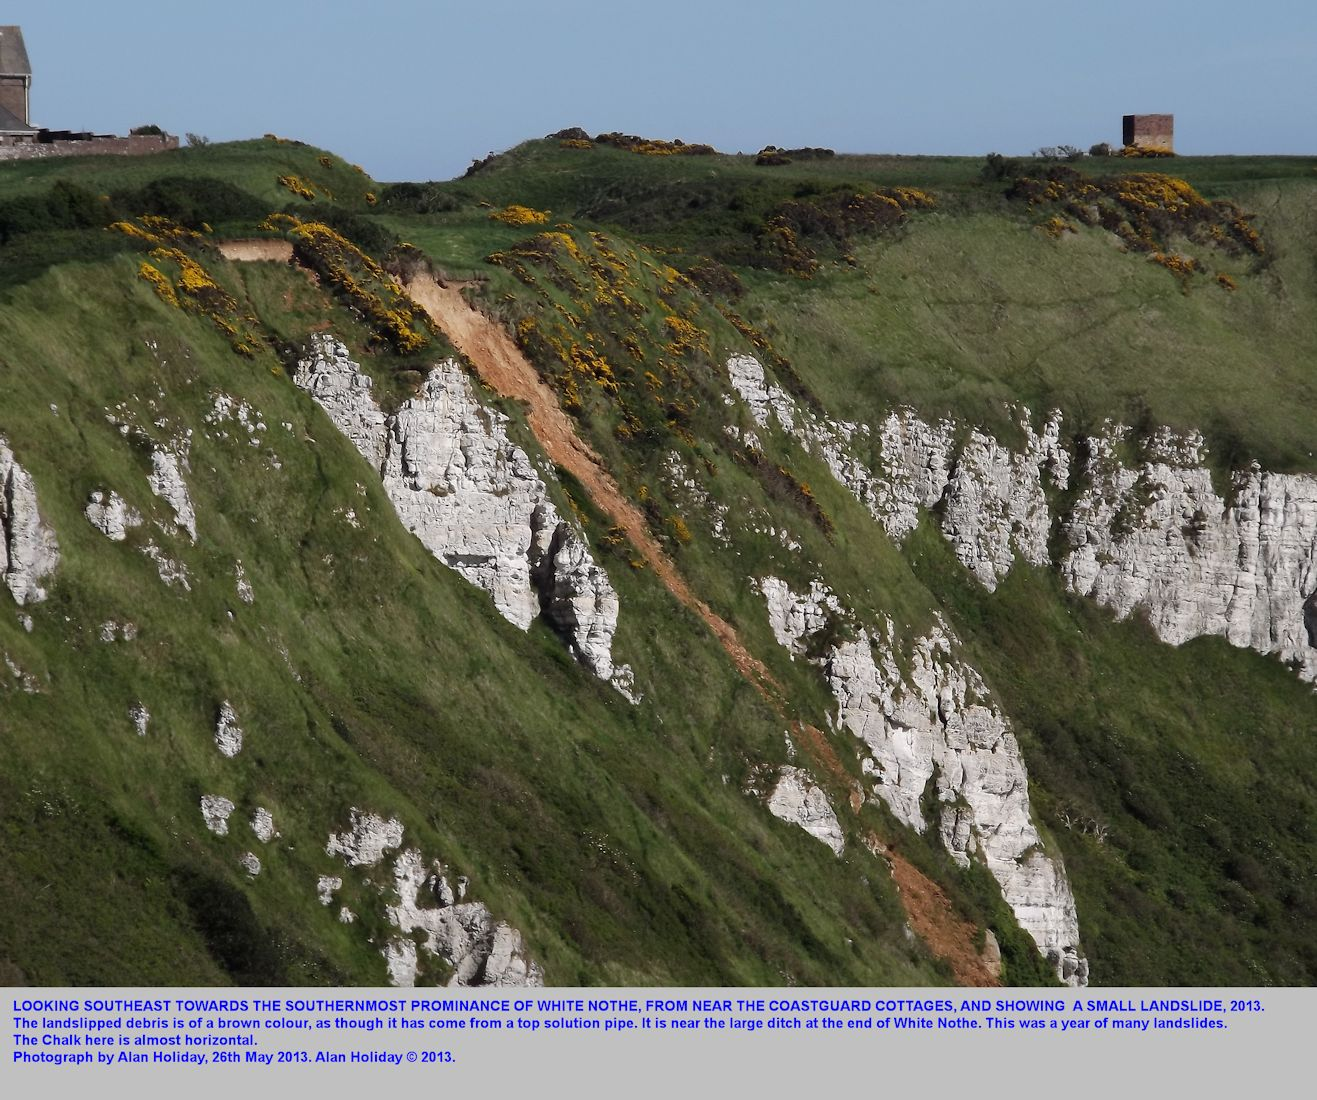 A small landslide near the souhern end of White Nothe, Dorset, 26th May, 2013